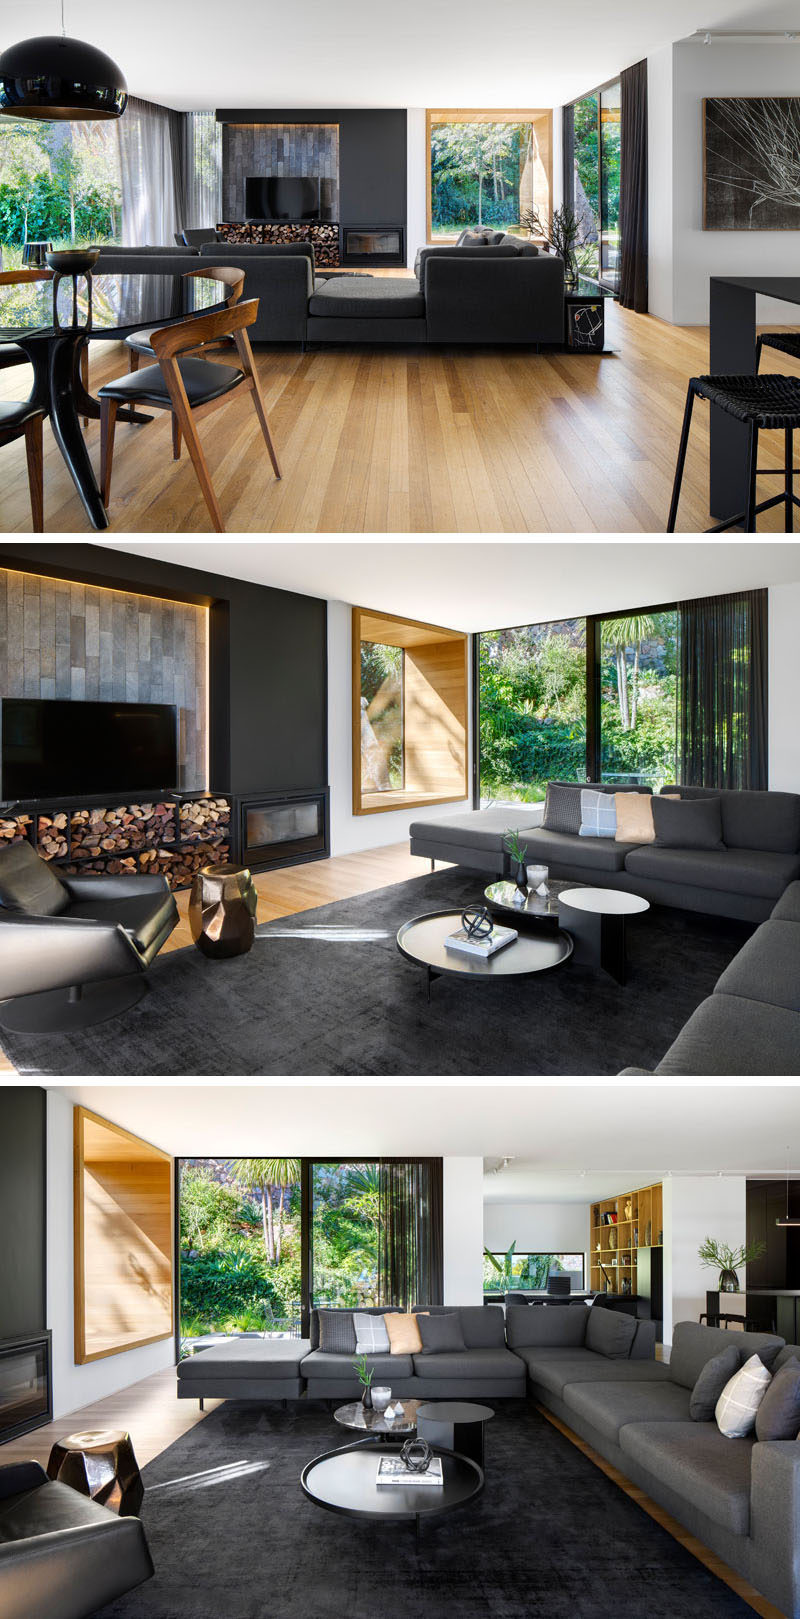 In this modern living room, there's a tiled accent wall behind the tv and below, is plenty of firewood storage for the fireplace that is next to it. There's also a wood-framed window seat and access to a small outdoor patio on the right. #WindowSeat #ModernLivingRoom #Fireplace